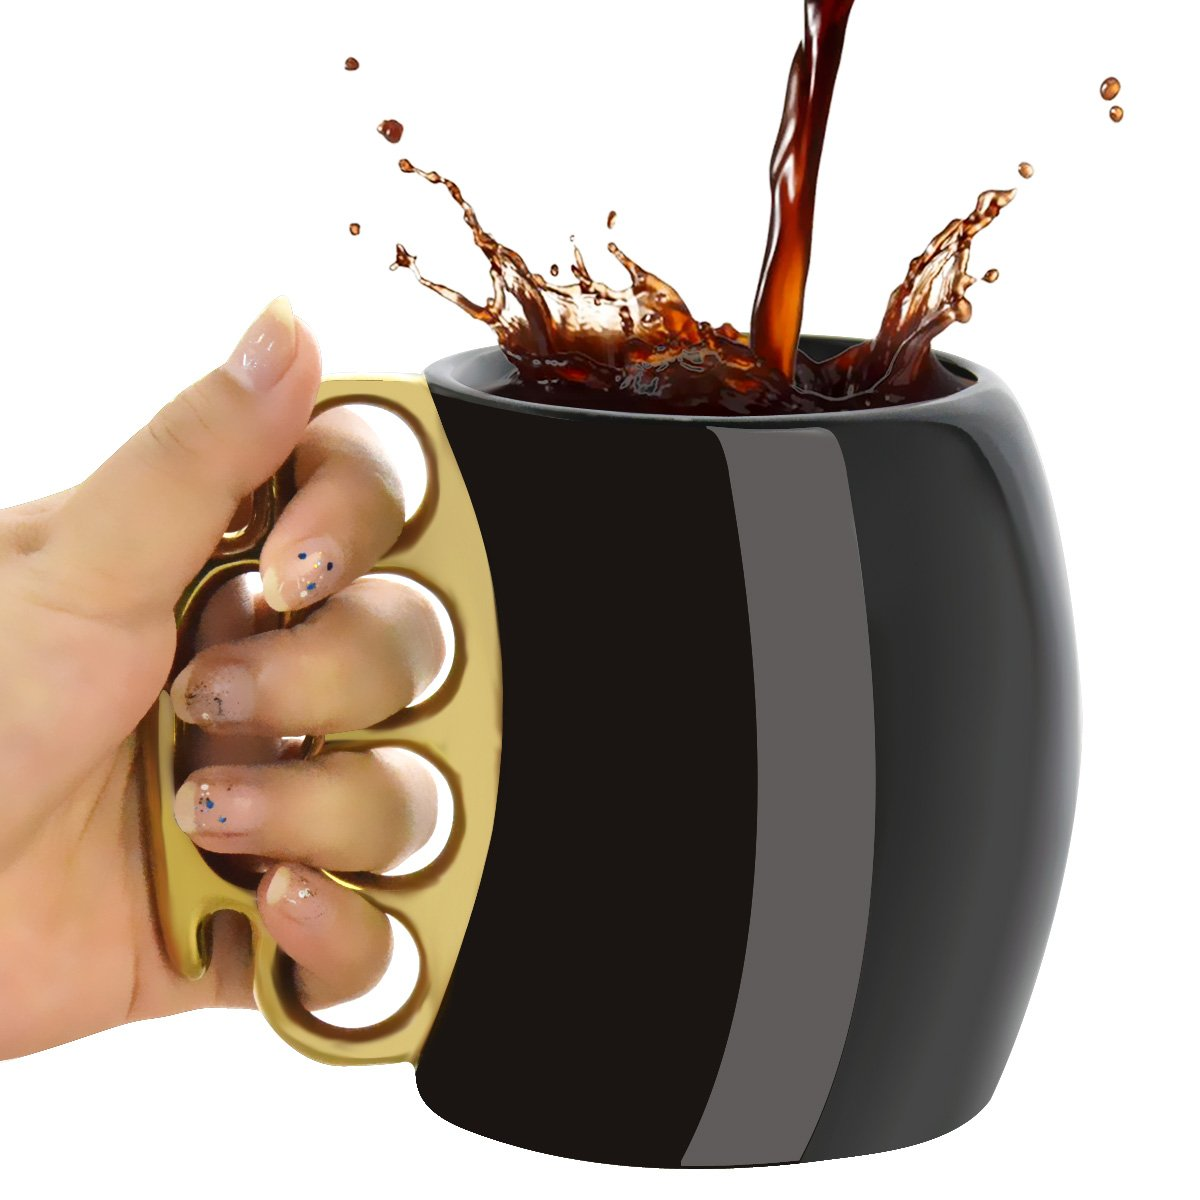 MOACC Fist Cup Brass Knuckle Duster Coffee Mug Creative Ceramic Coffee Milk Tea Fist Mug Cup Cool Gift Black with Golden Handle